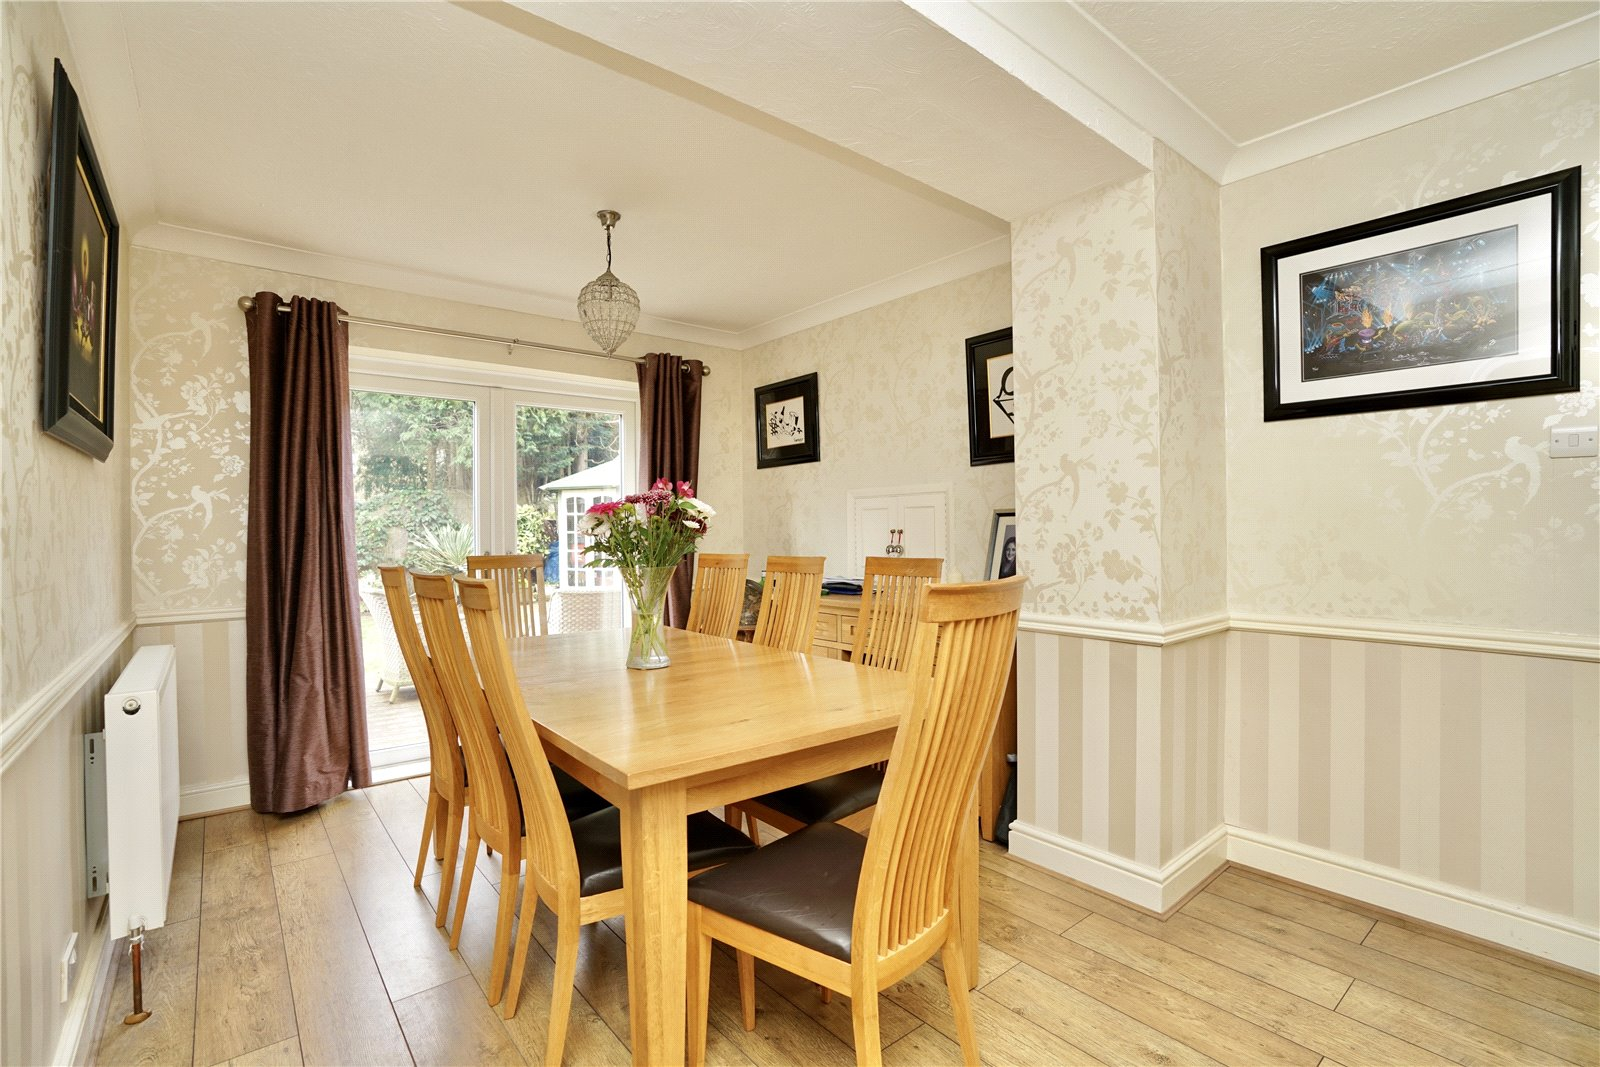 3 bed house for sale in Barley Road, Eaton Socon  - Property Image 3